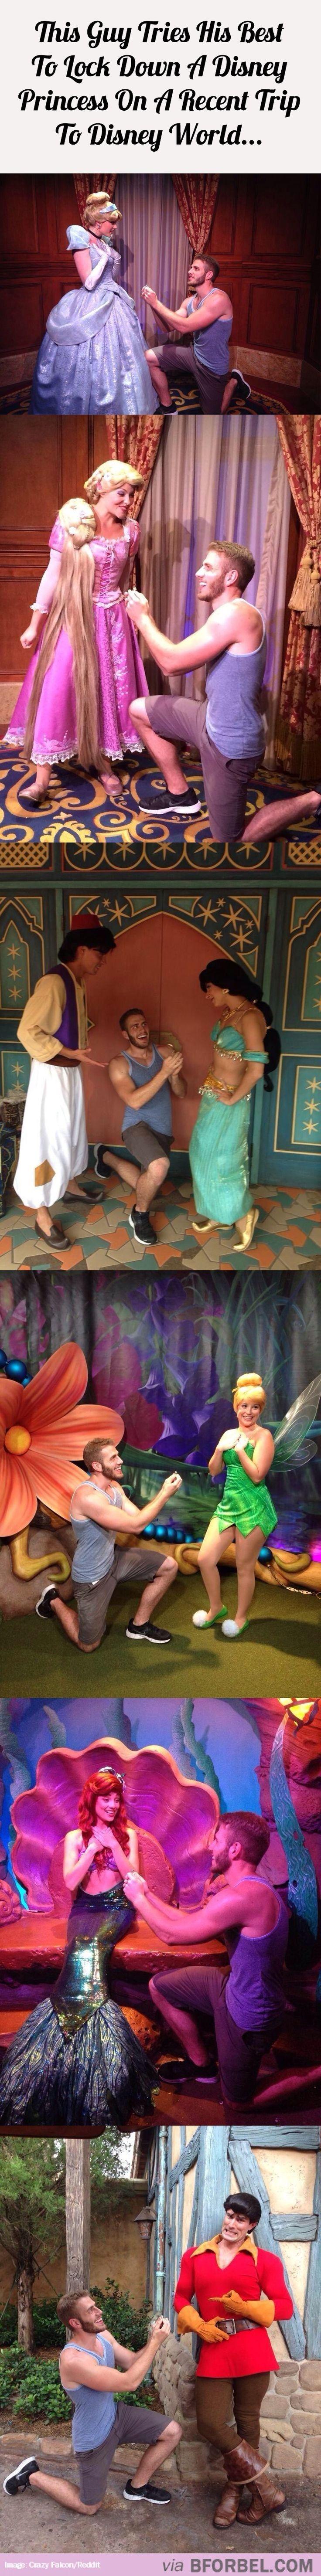 Guy Tries His Best To Lock Down A Disney Princess On A Recent Trip To Disney World…